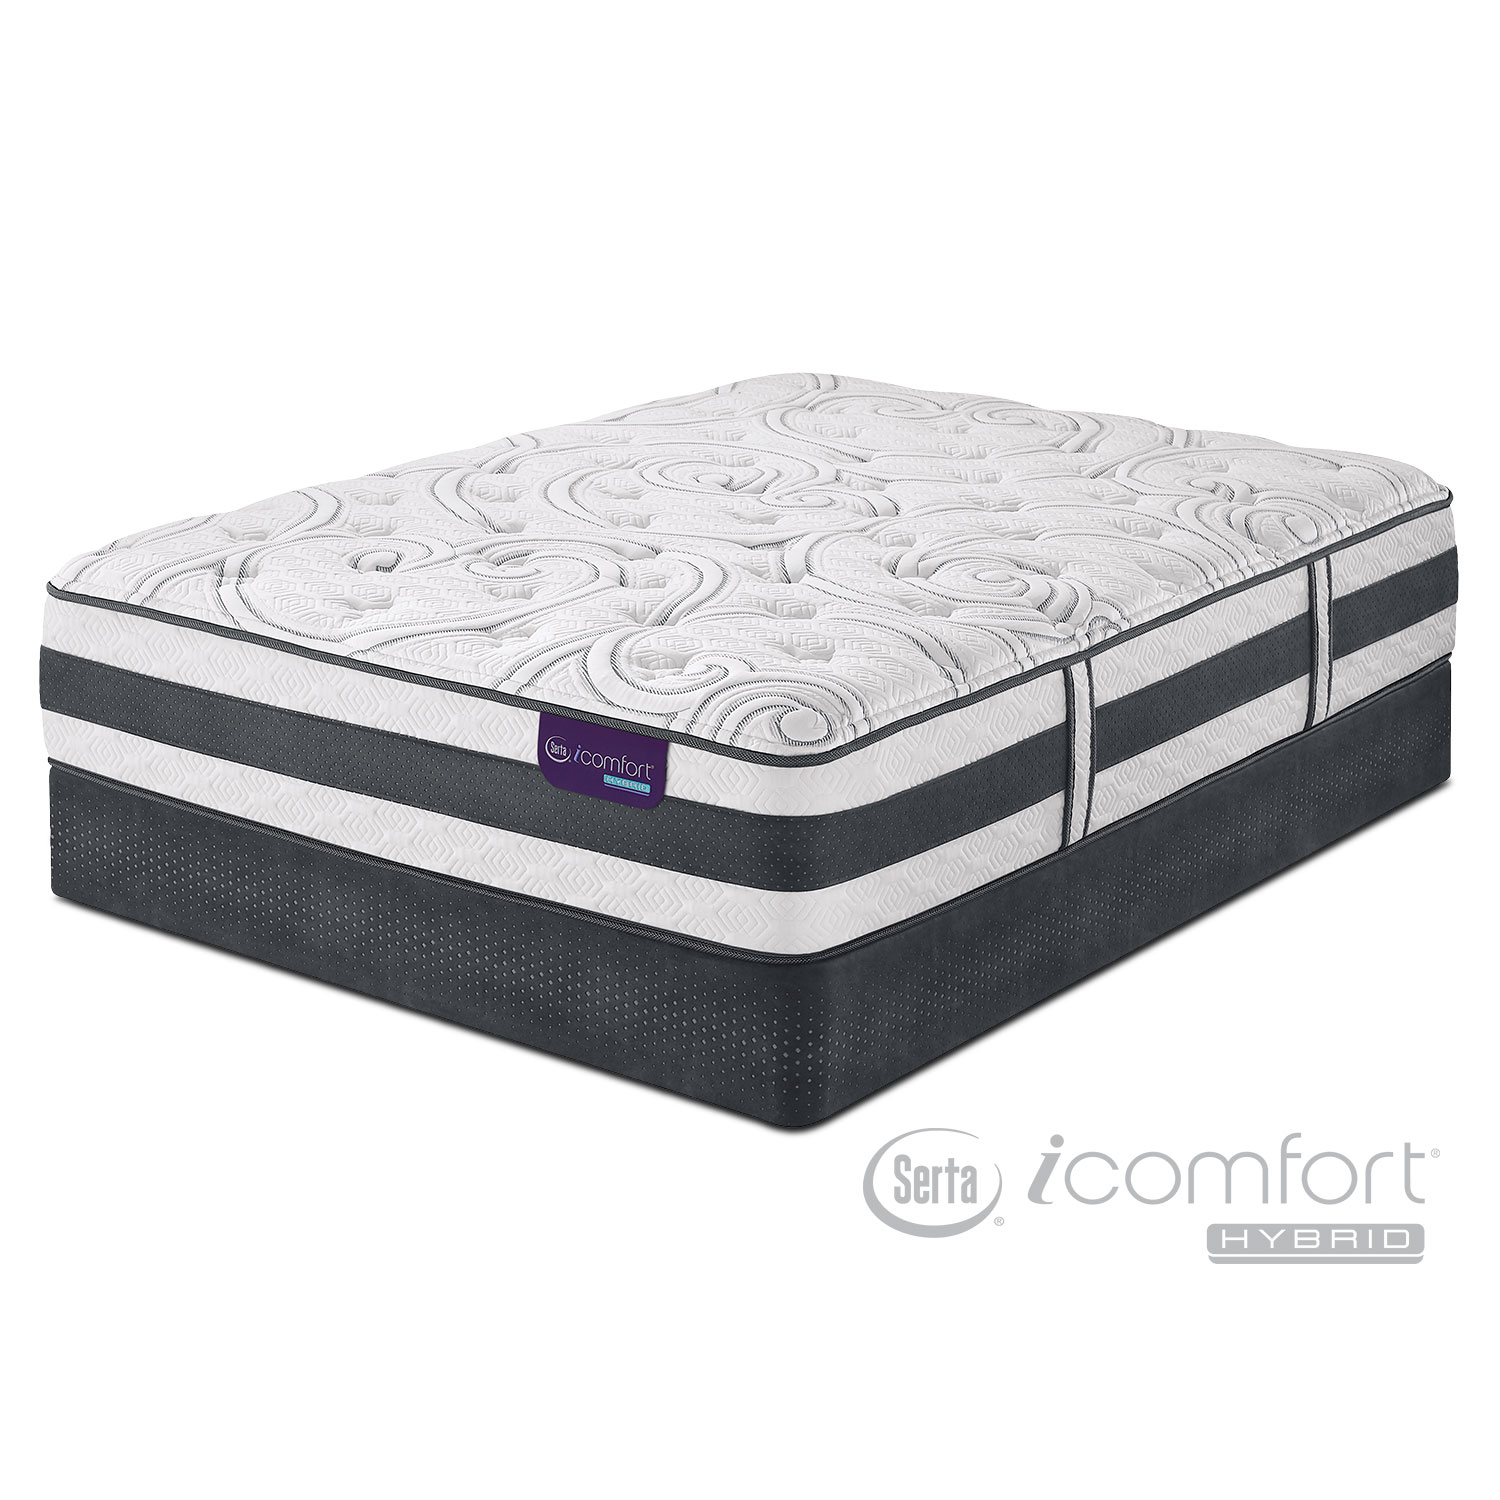 Applause II Plush Full Mattress and Low-Profile Foundation Set